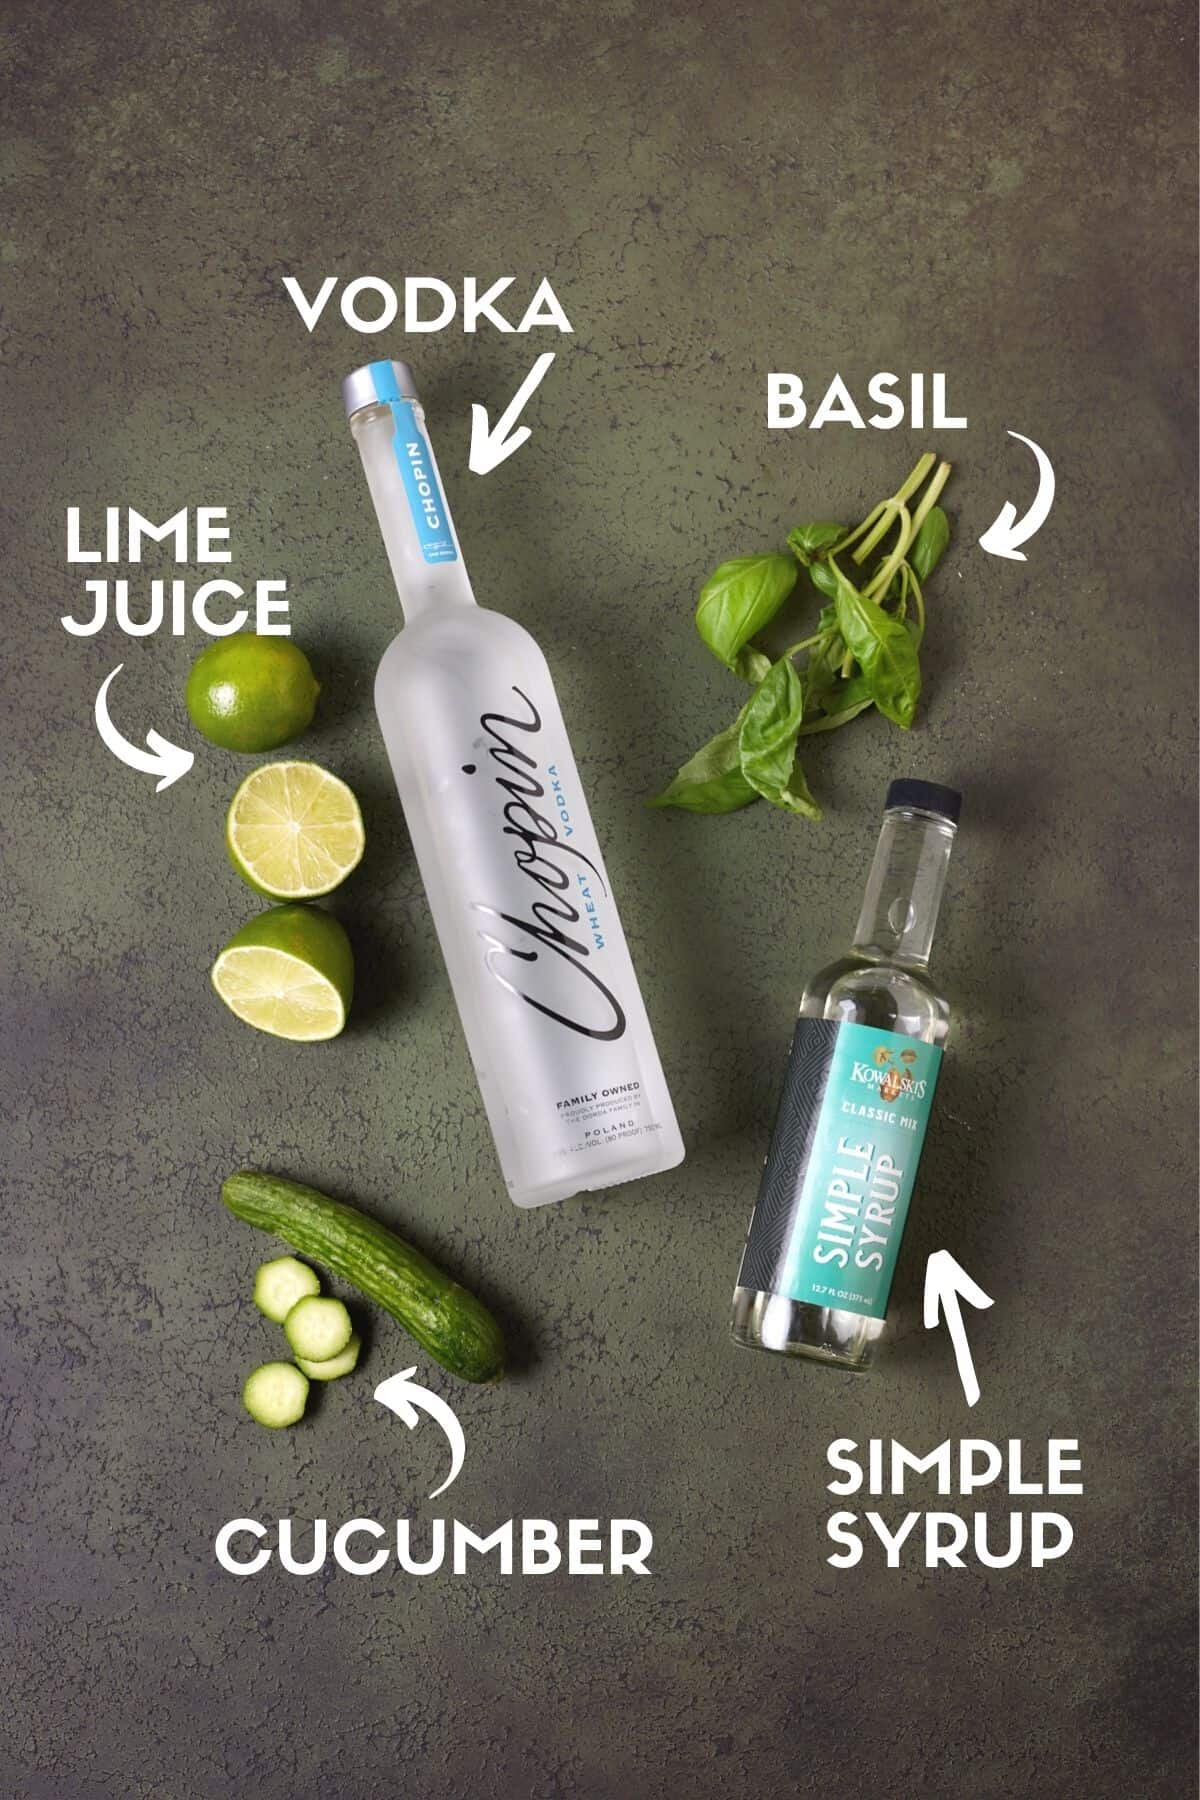 Ingredients for cucumber gimlet, including vodka, cucumbers, basil, lime juice & simple syrup.